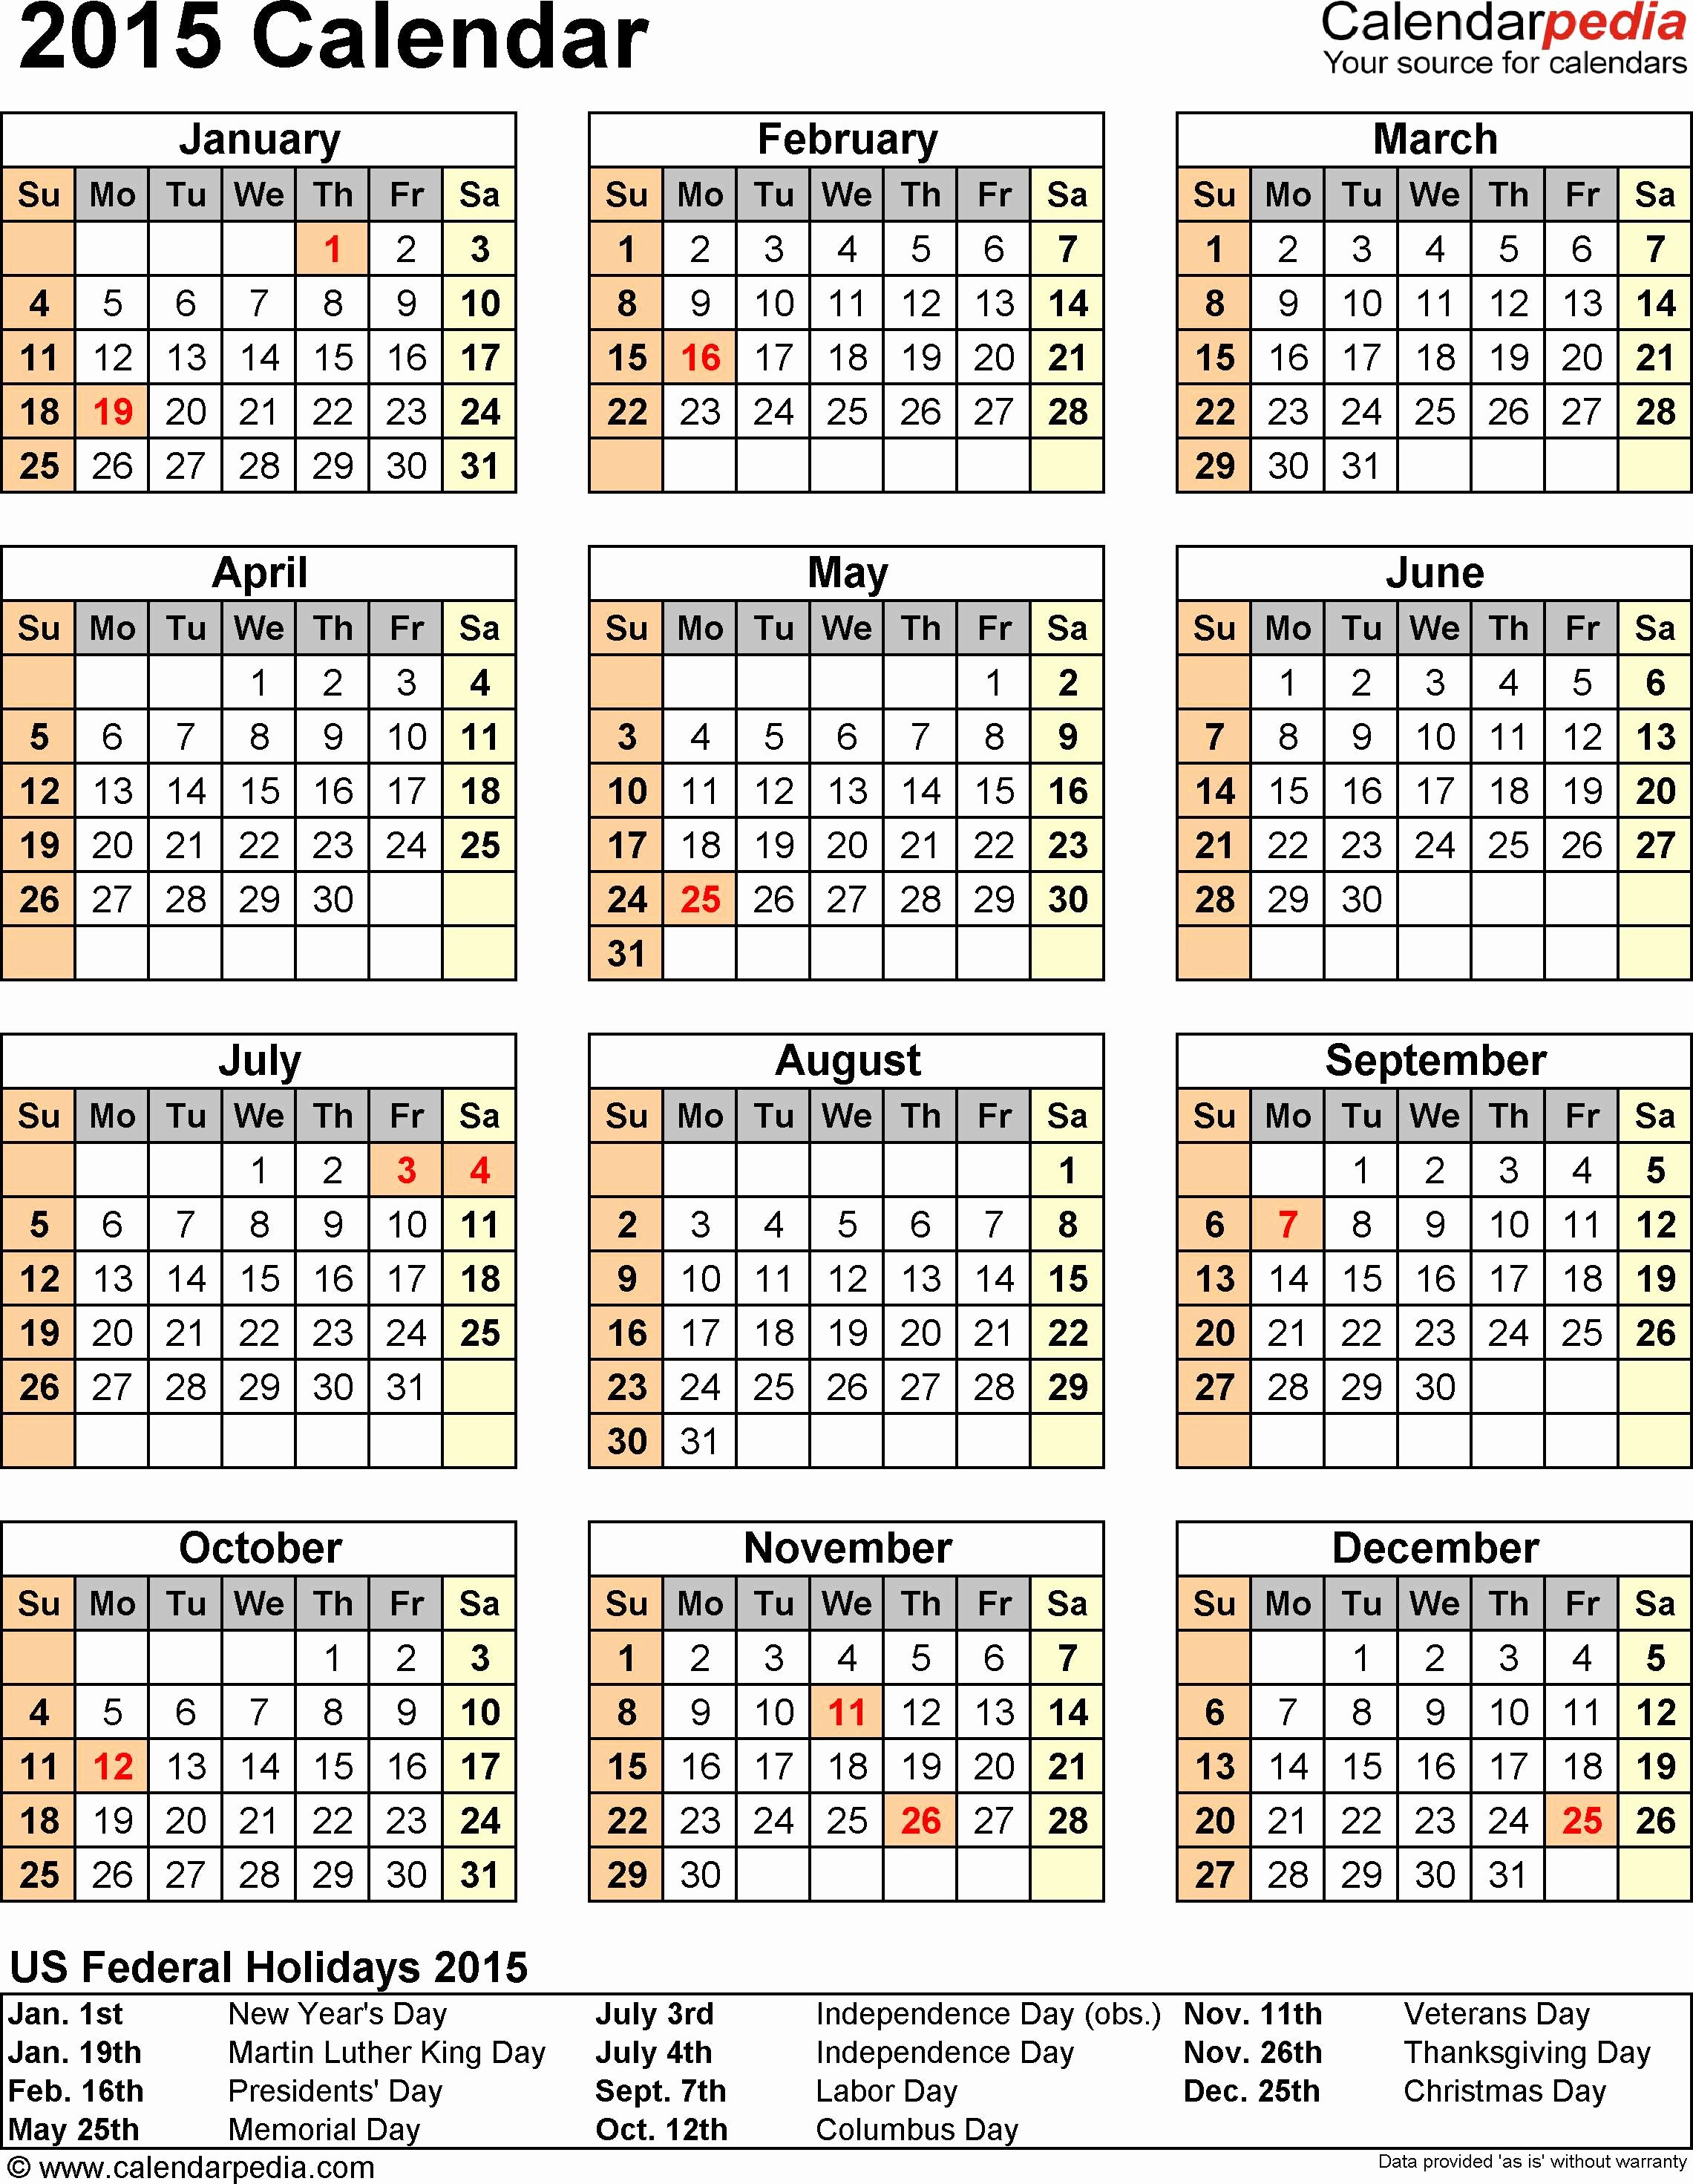 One Page Yearly Calendar 2015 New 2015 Calendar with Federal Holidays & Excel Pdf Word Templates